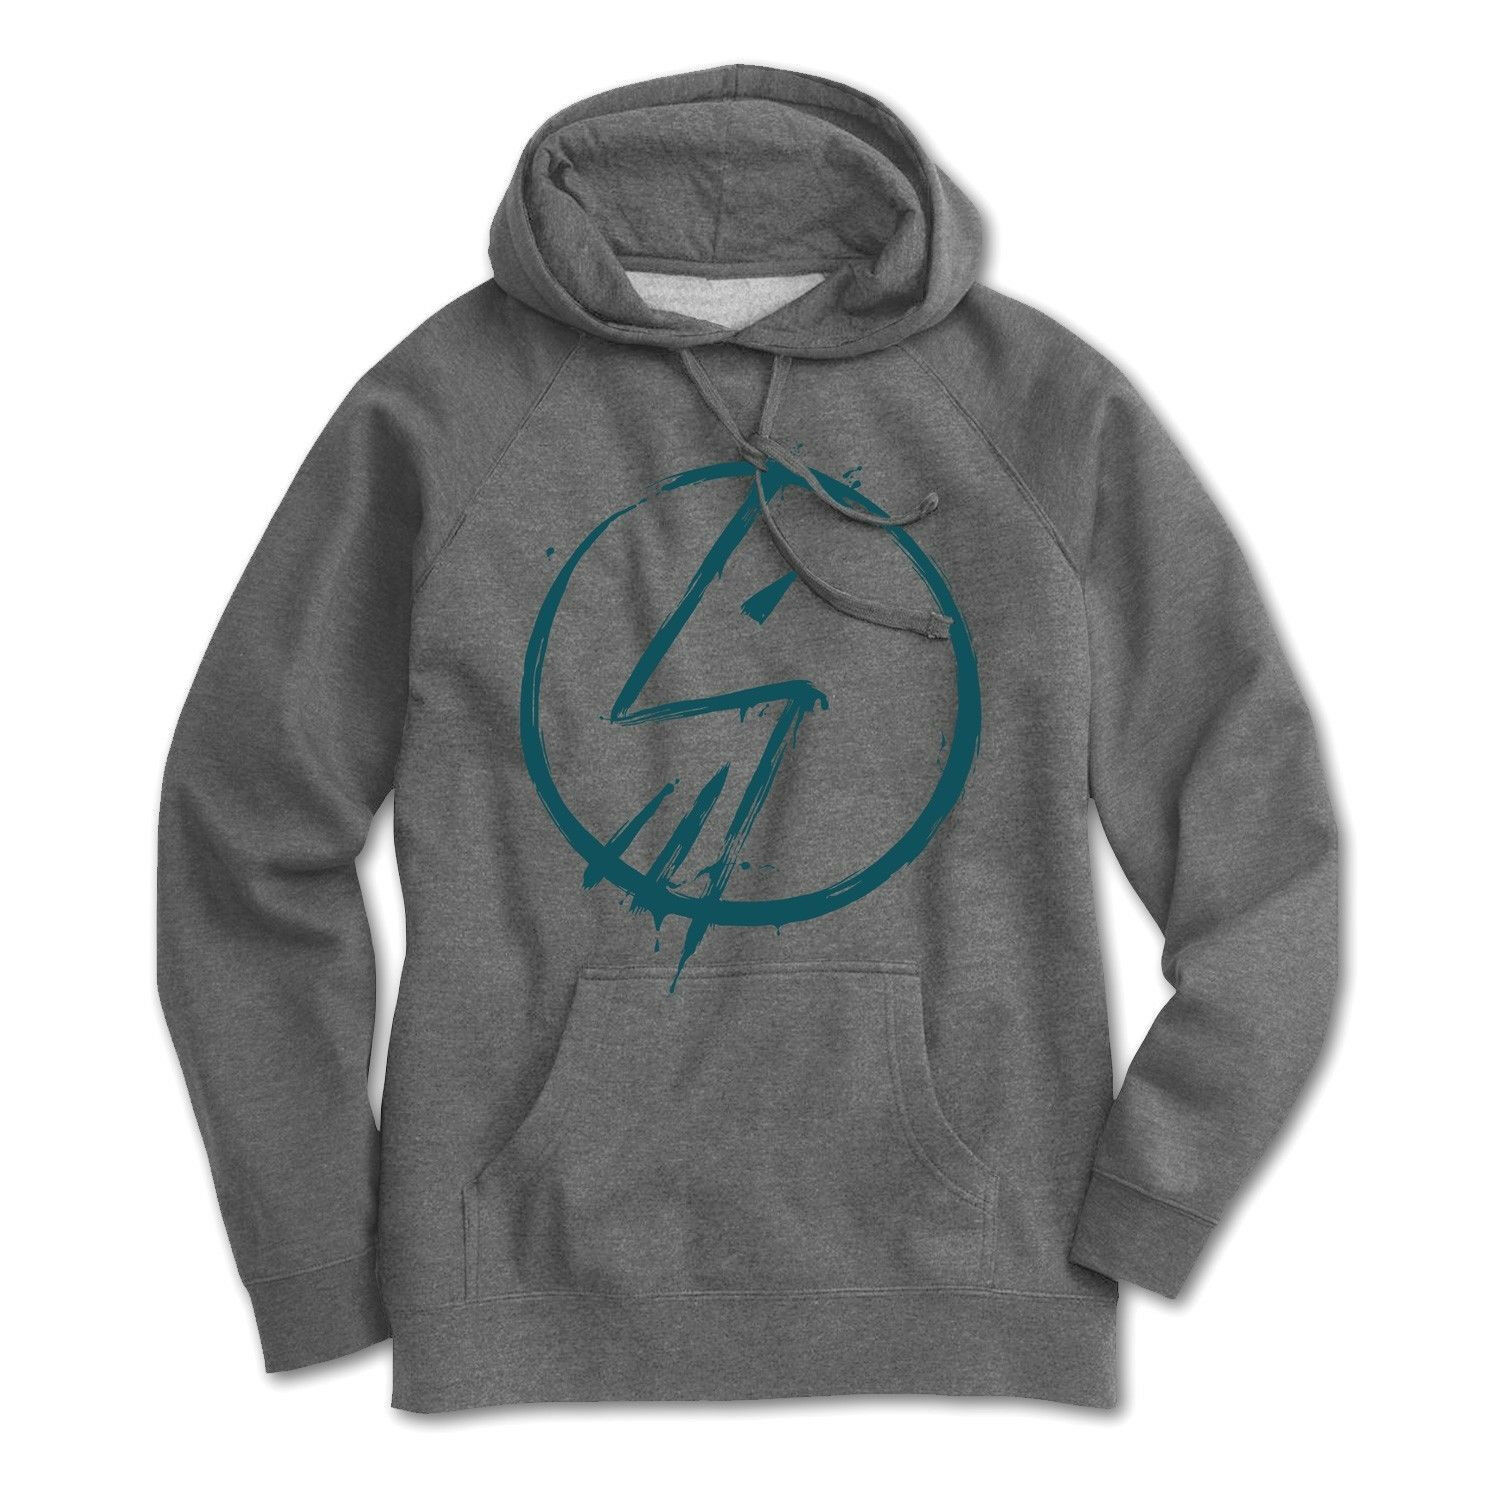 SHADOW CONSPIRACY TAG HOODED PULLOVER SWEATSHIRT HOODIE BMX grau NEW